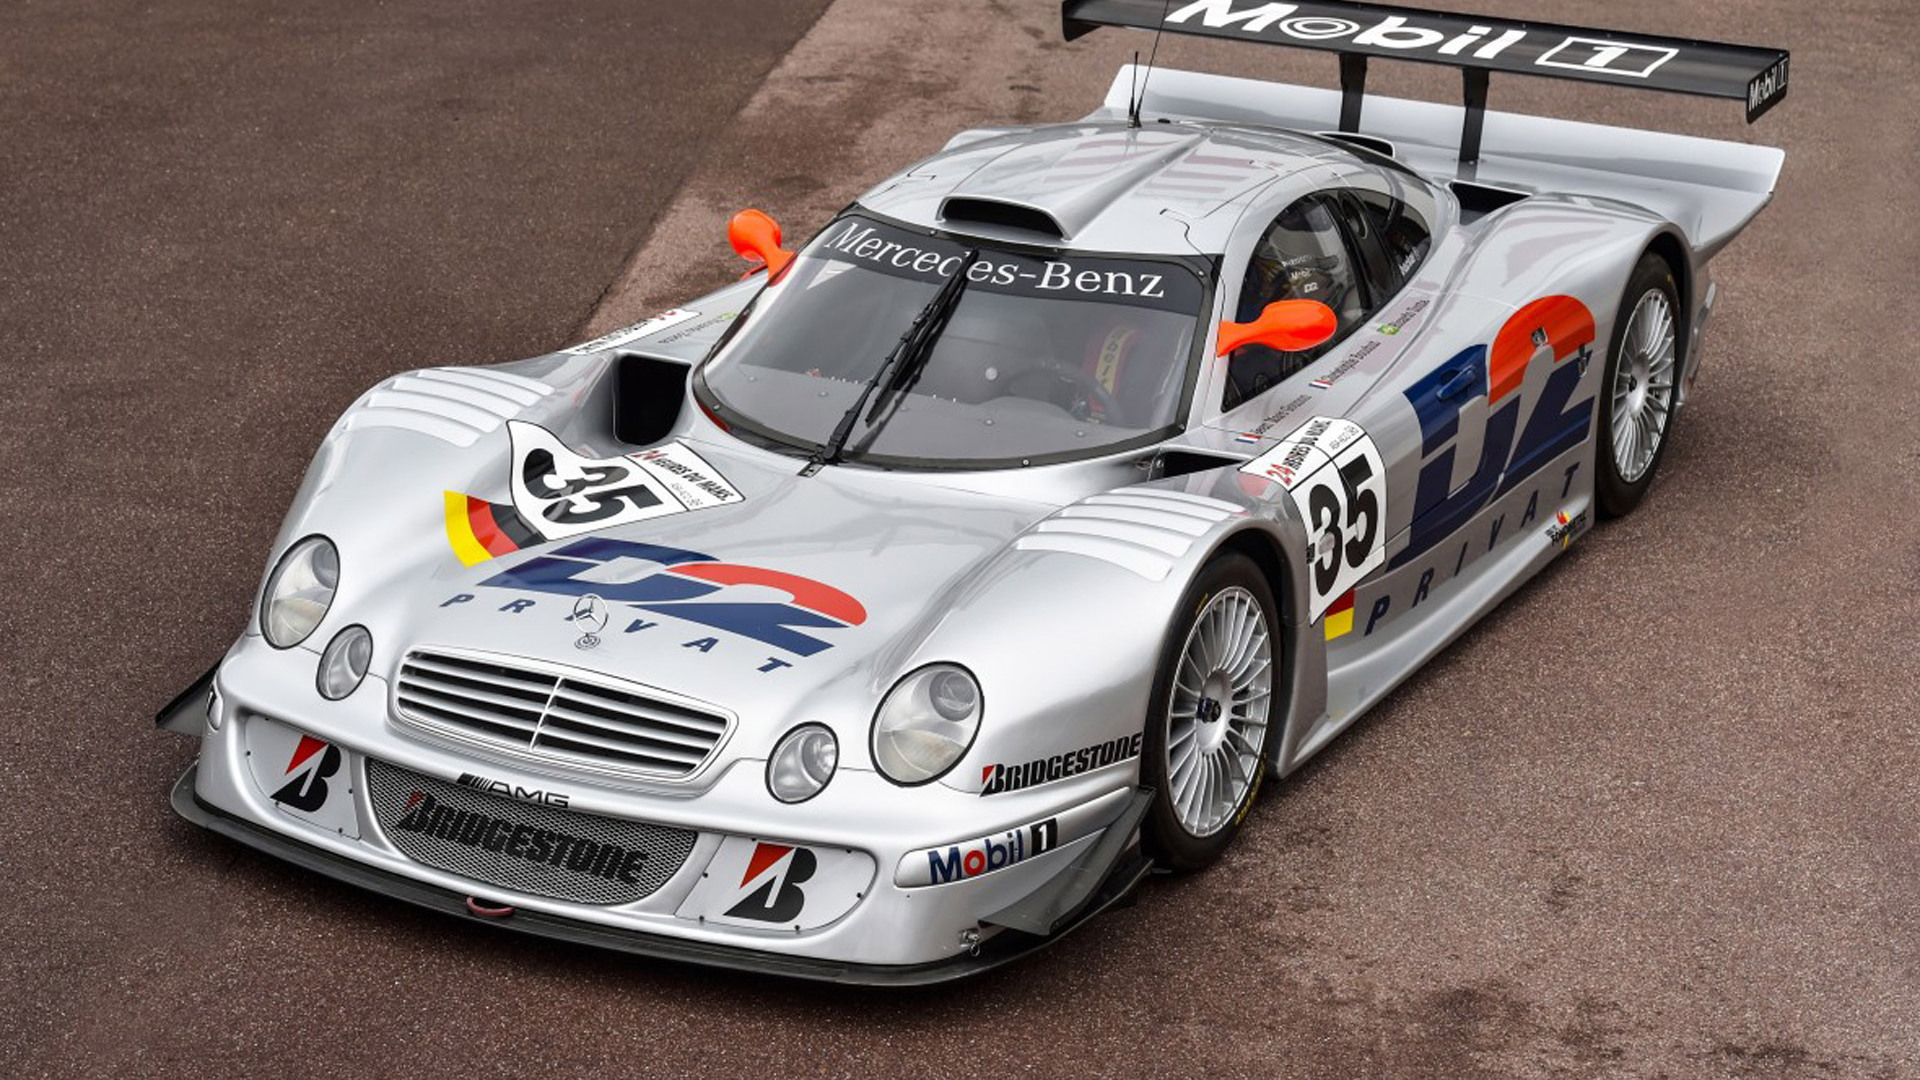 1998 Mercedes-Benz CLK LM race car